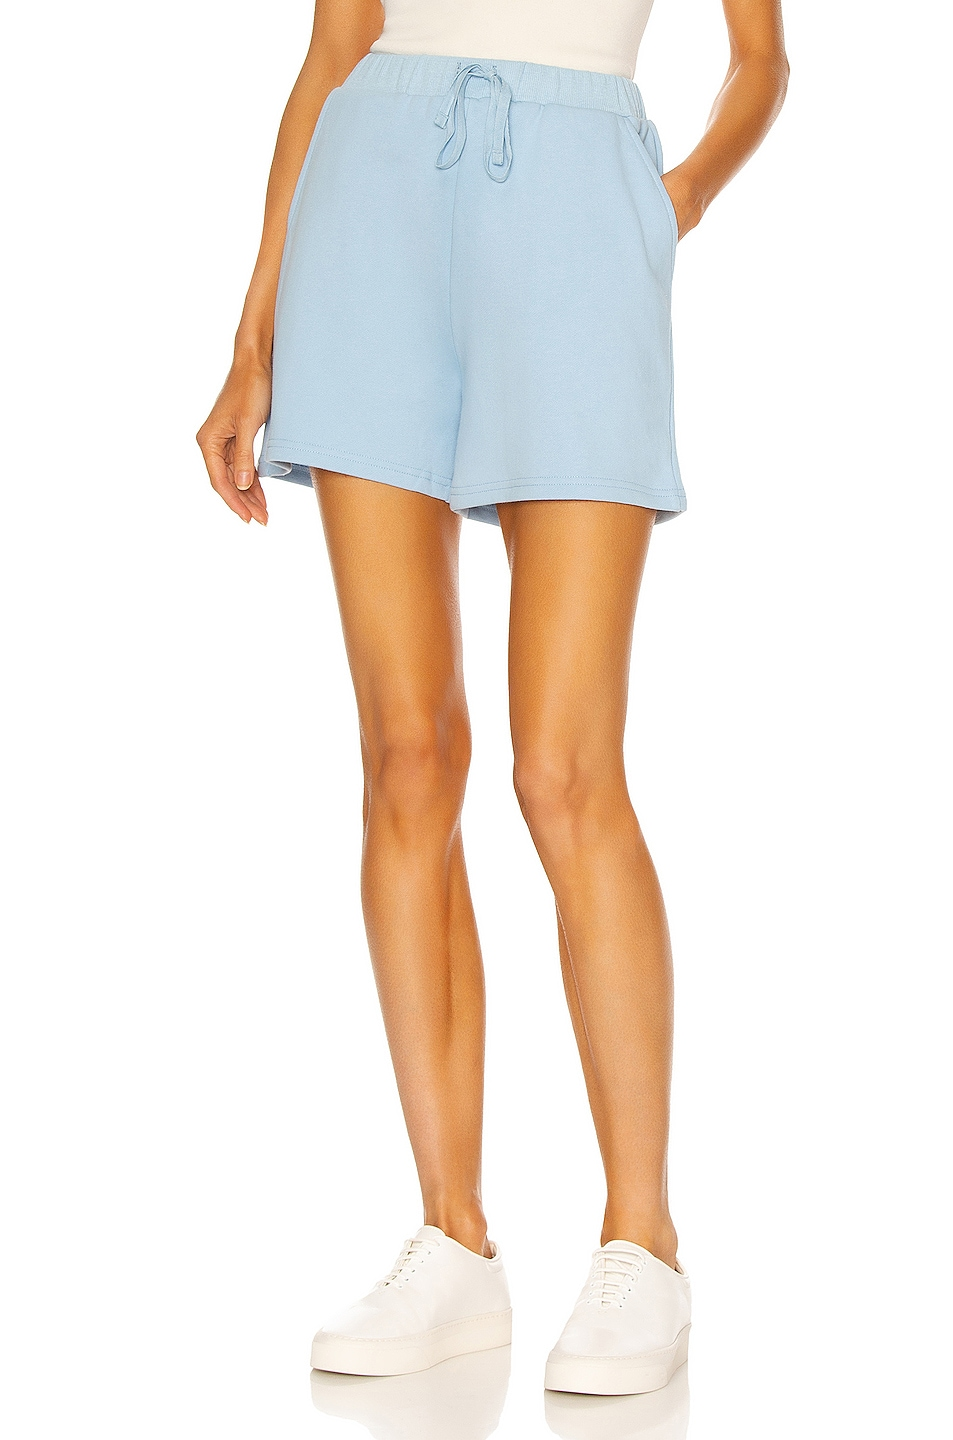 Image 1 of Atoir The Shorts in Baby Blue